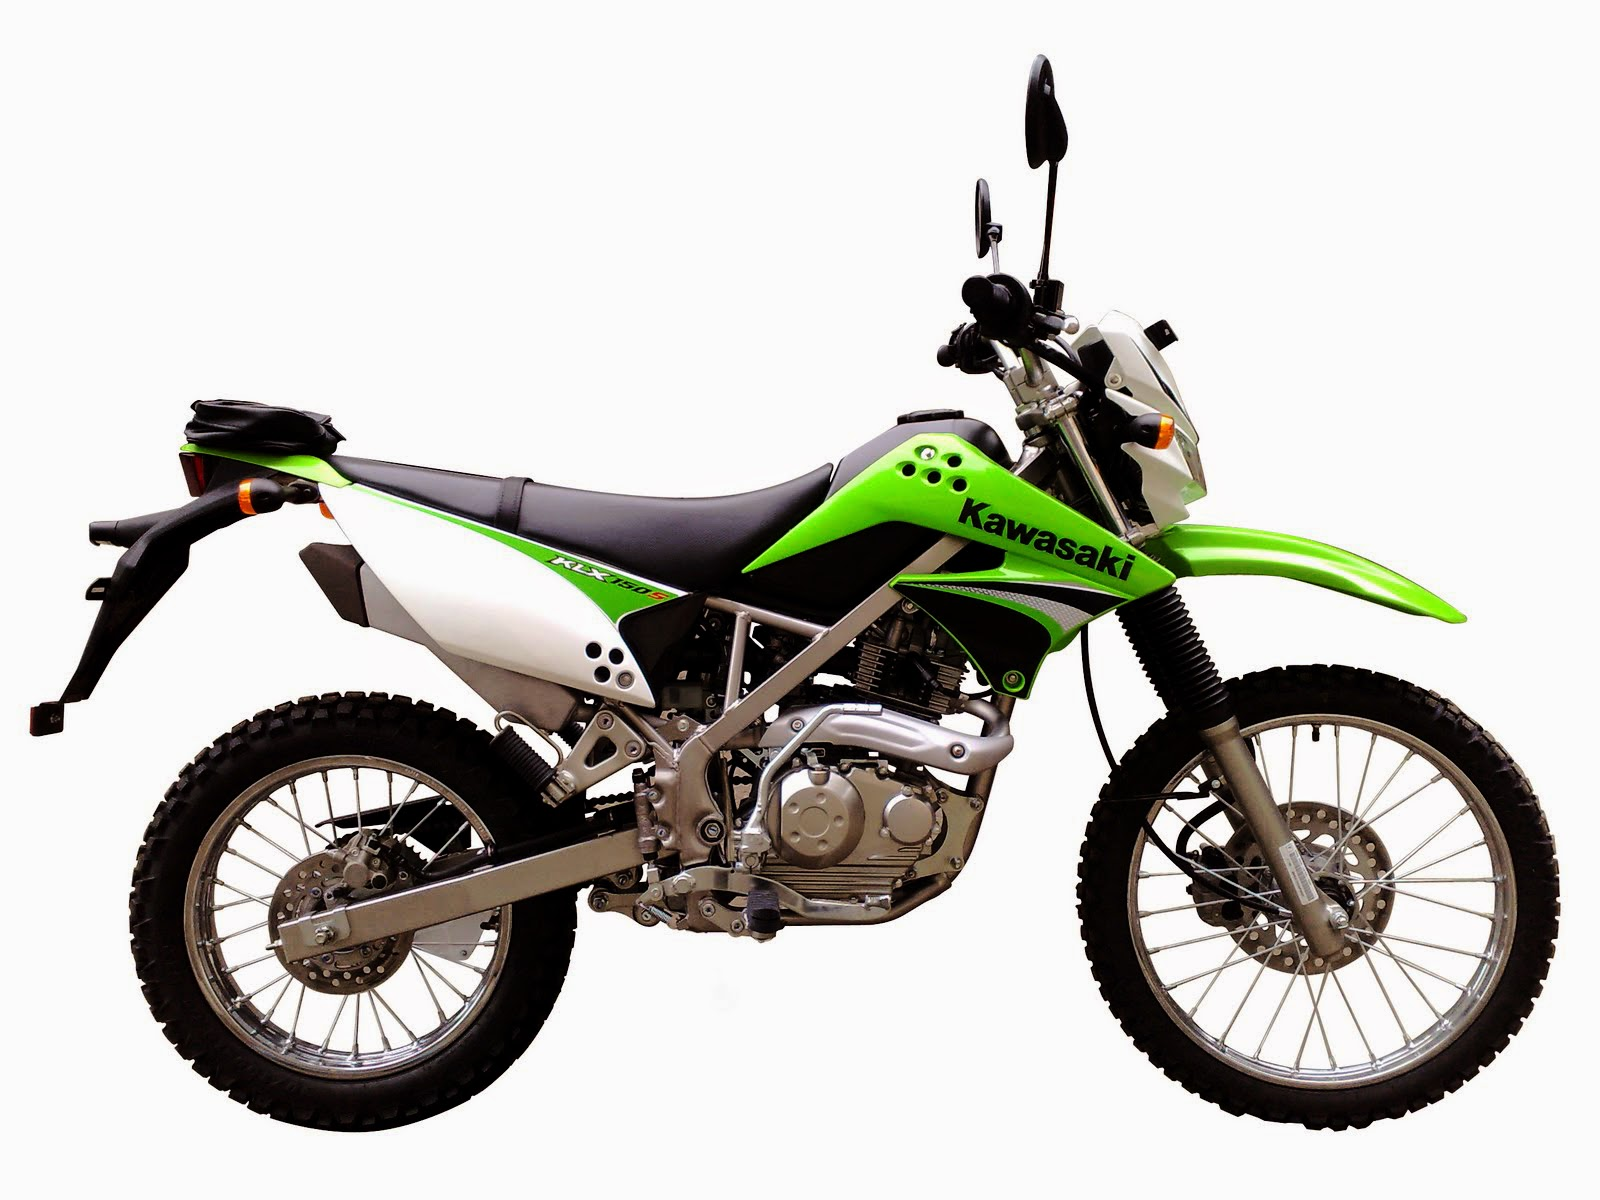 modifikasi kawasaki athlete 2013